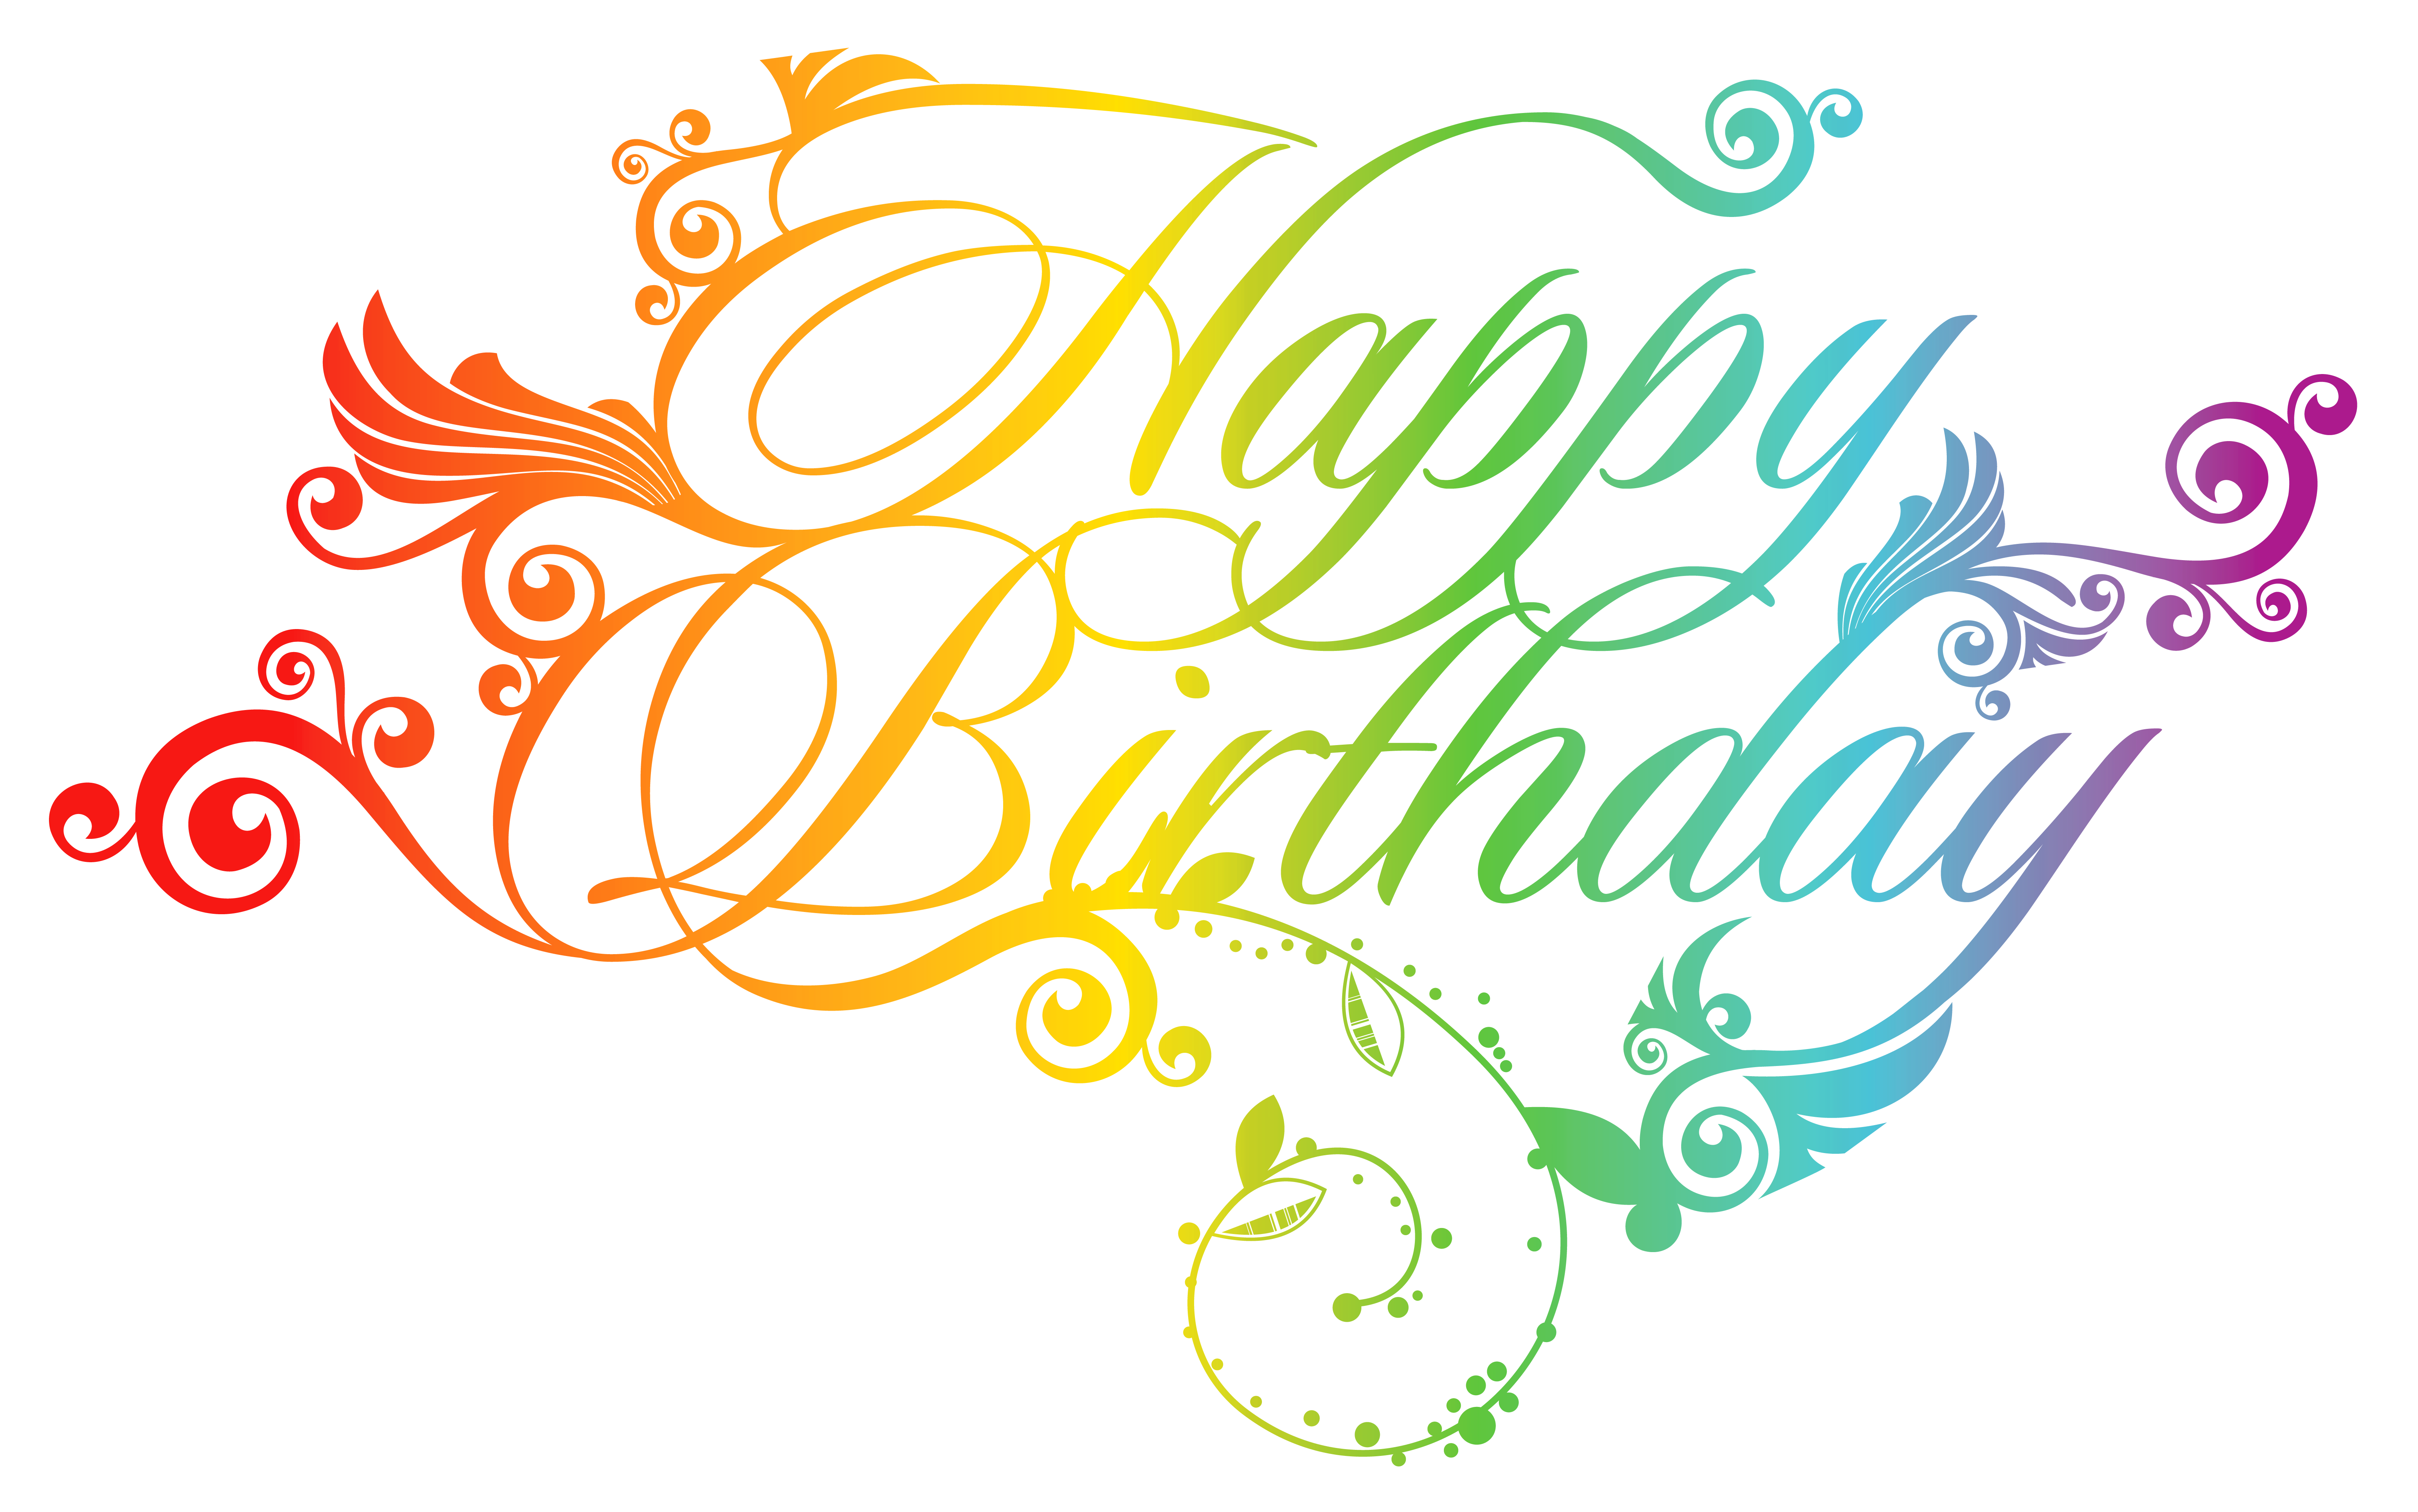 Happy Birthday Daughter Png - Pin by Colleen Wensel on Birthday Images   Happy birthday png ...